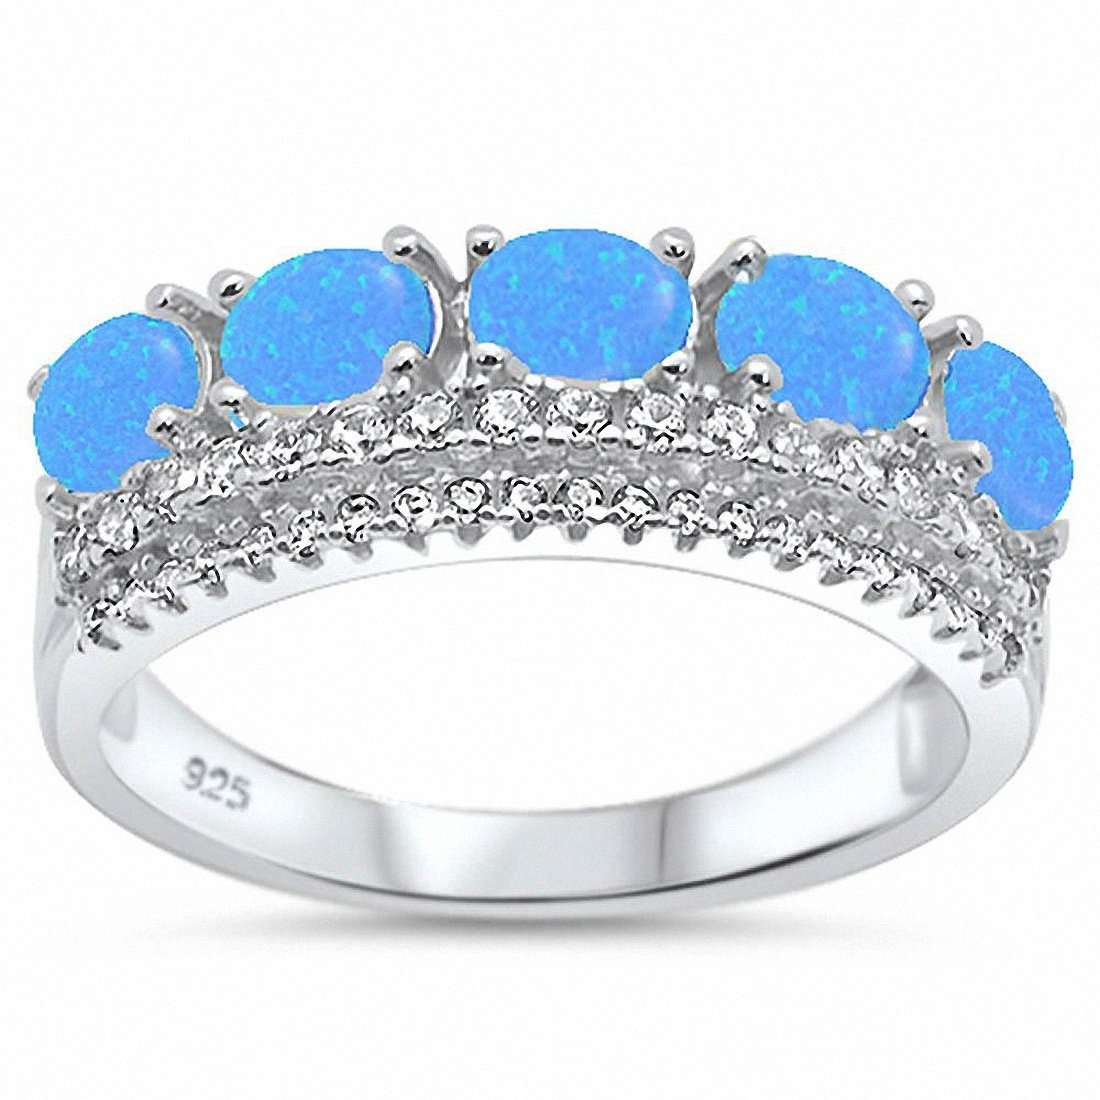 Half Eternity Crown Ring King Quen Round Cubic Zirconia Created Opal 925 Sterling Silver Choose Color